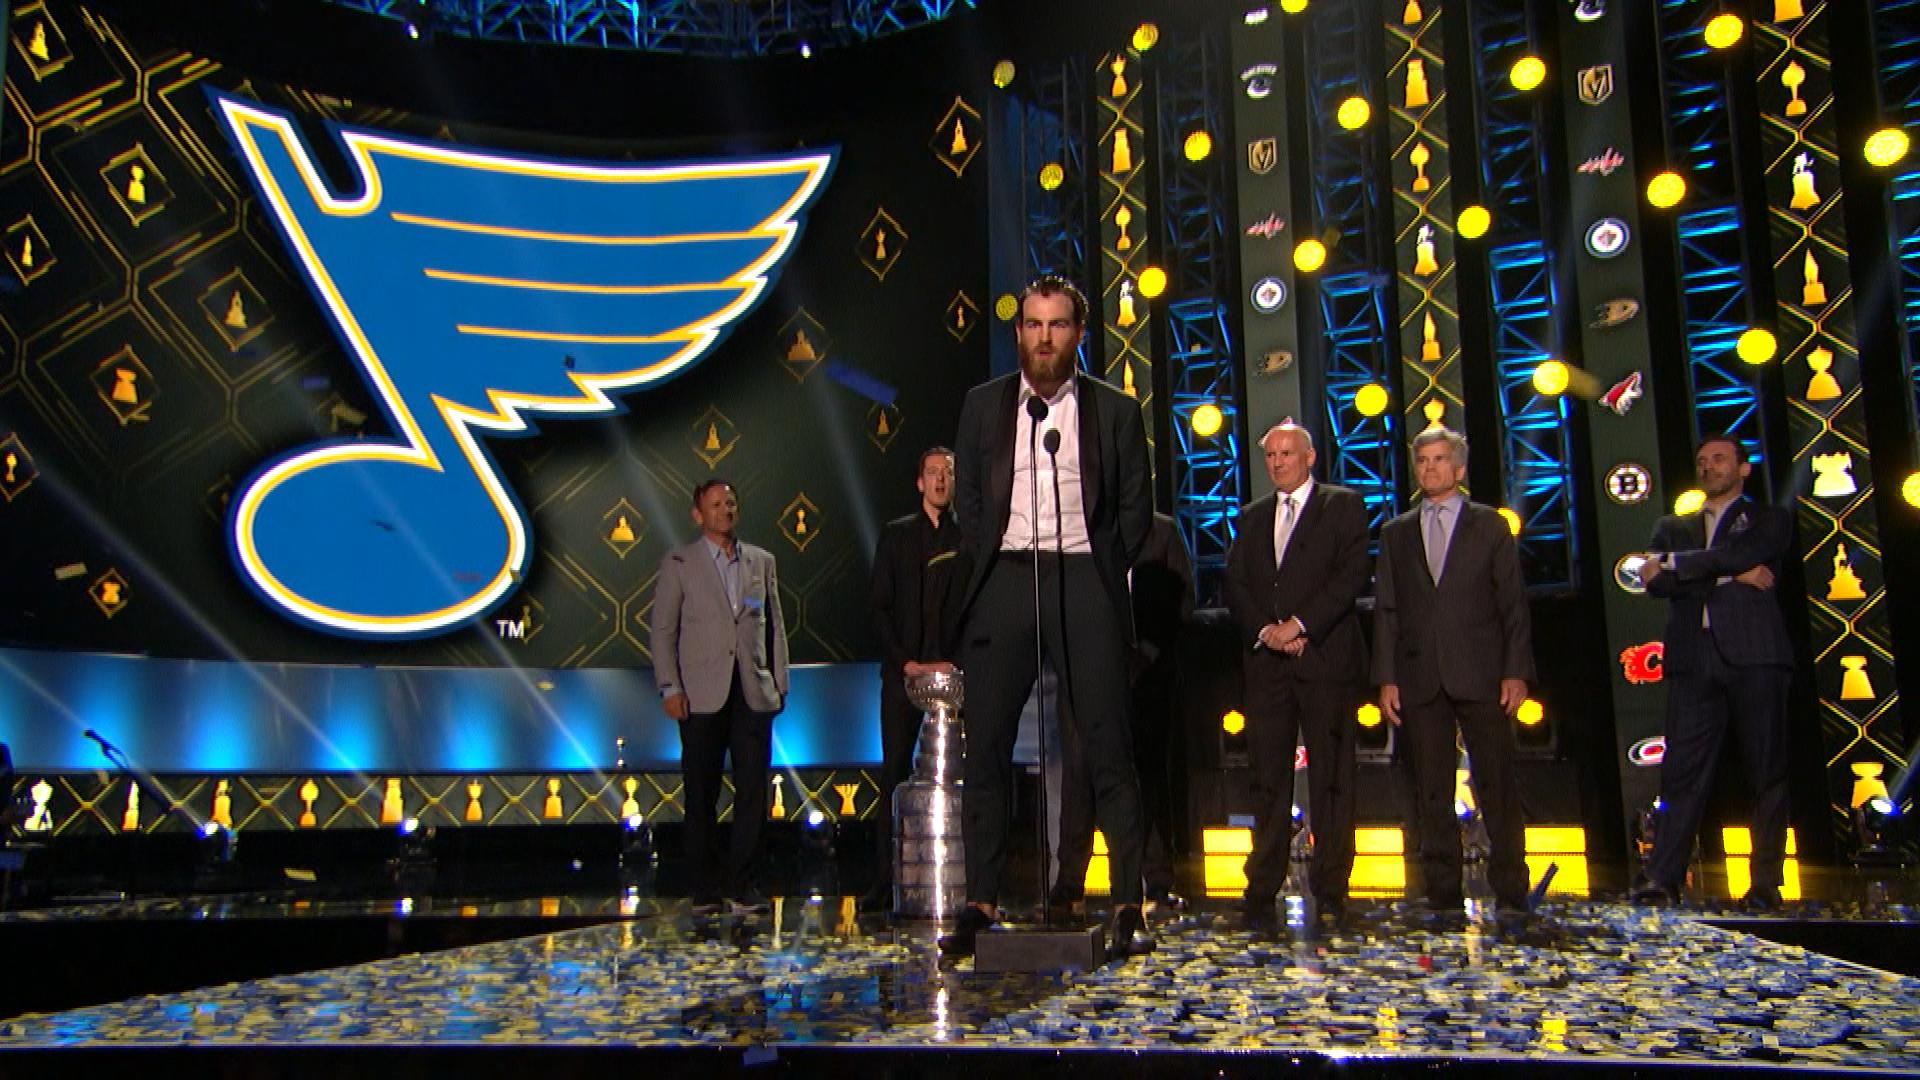 St. Louis Blues show off Stanley Cup at NHL Awards with Jon Hamm